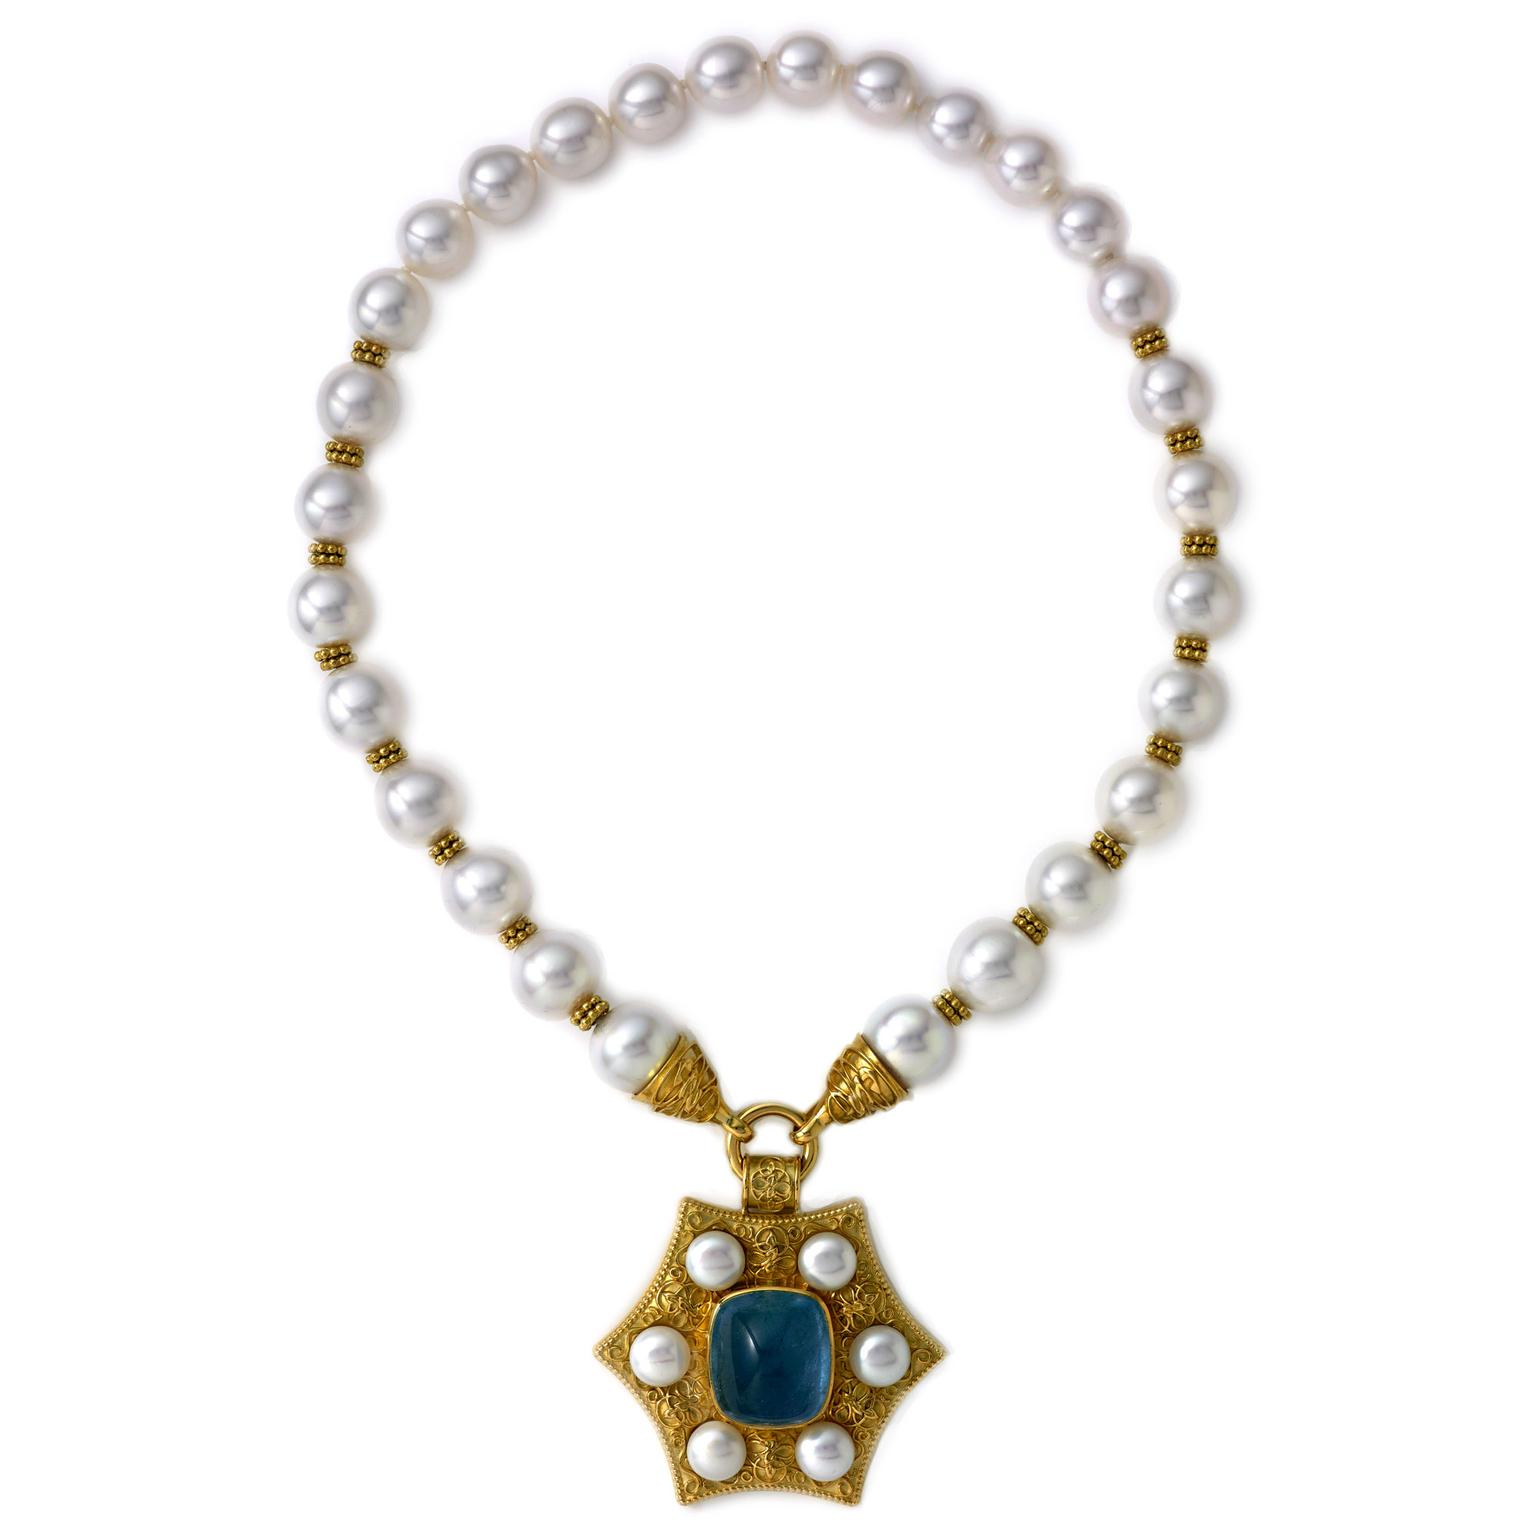 Elizabeth Gage pearl and aquamarine necklace